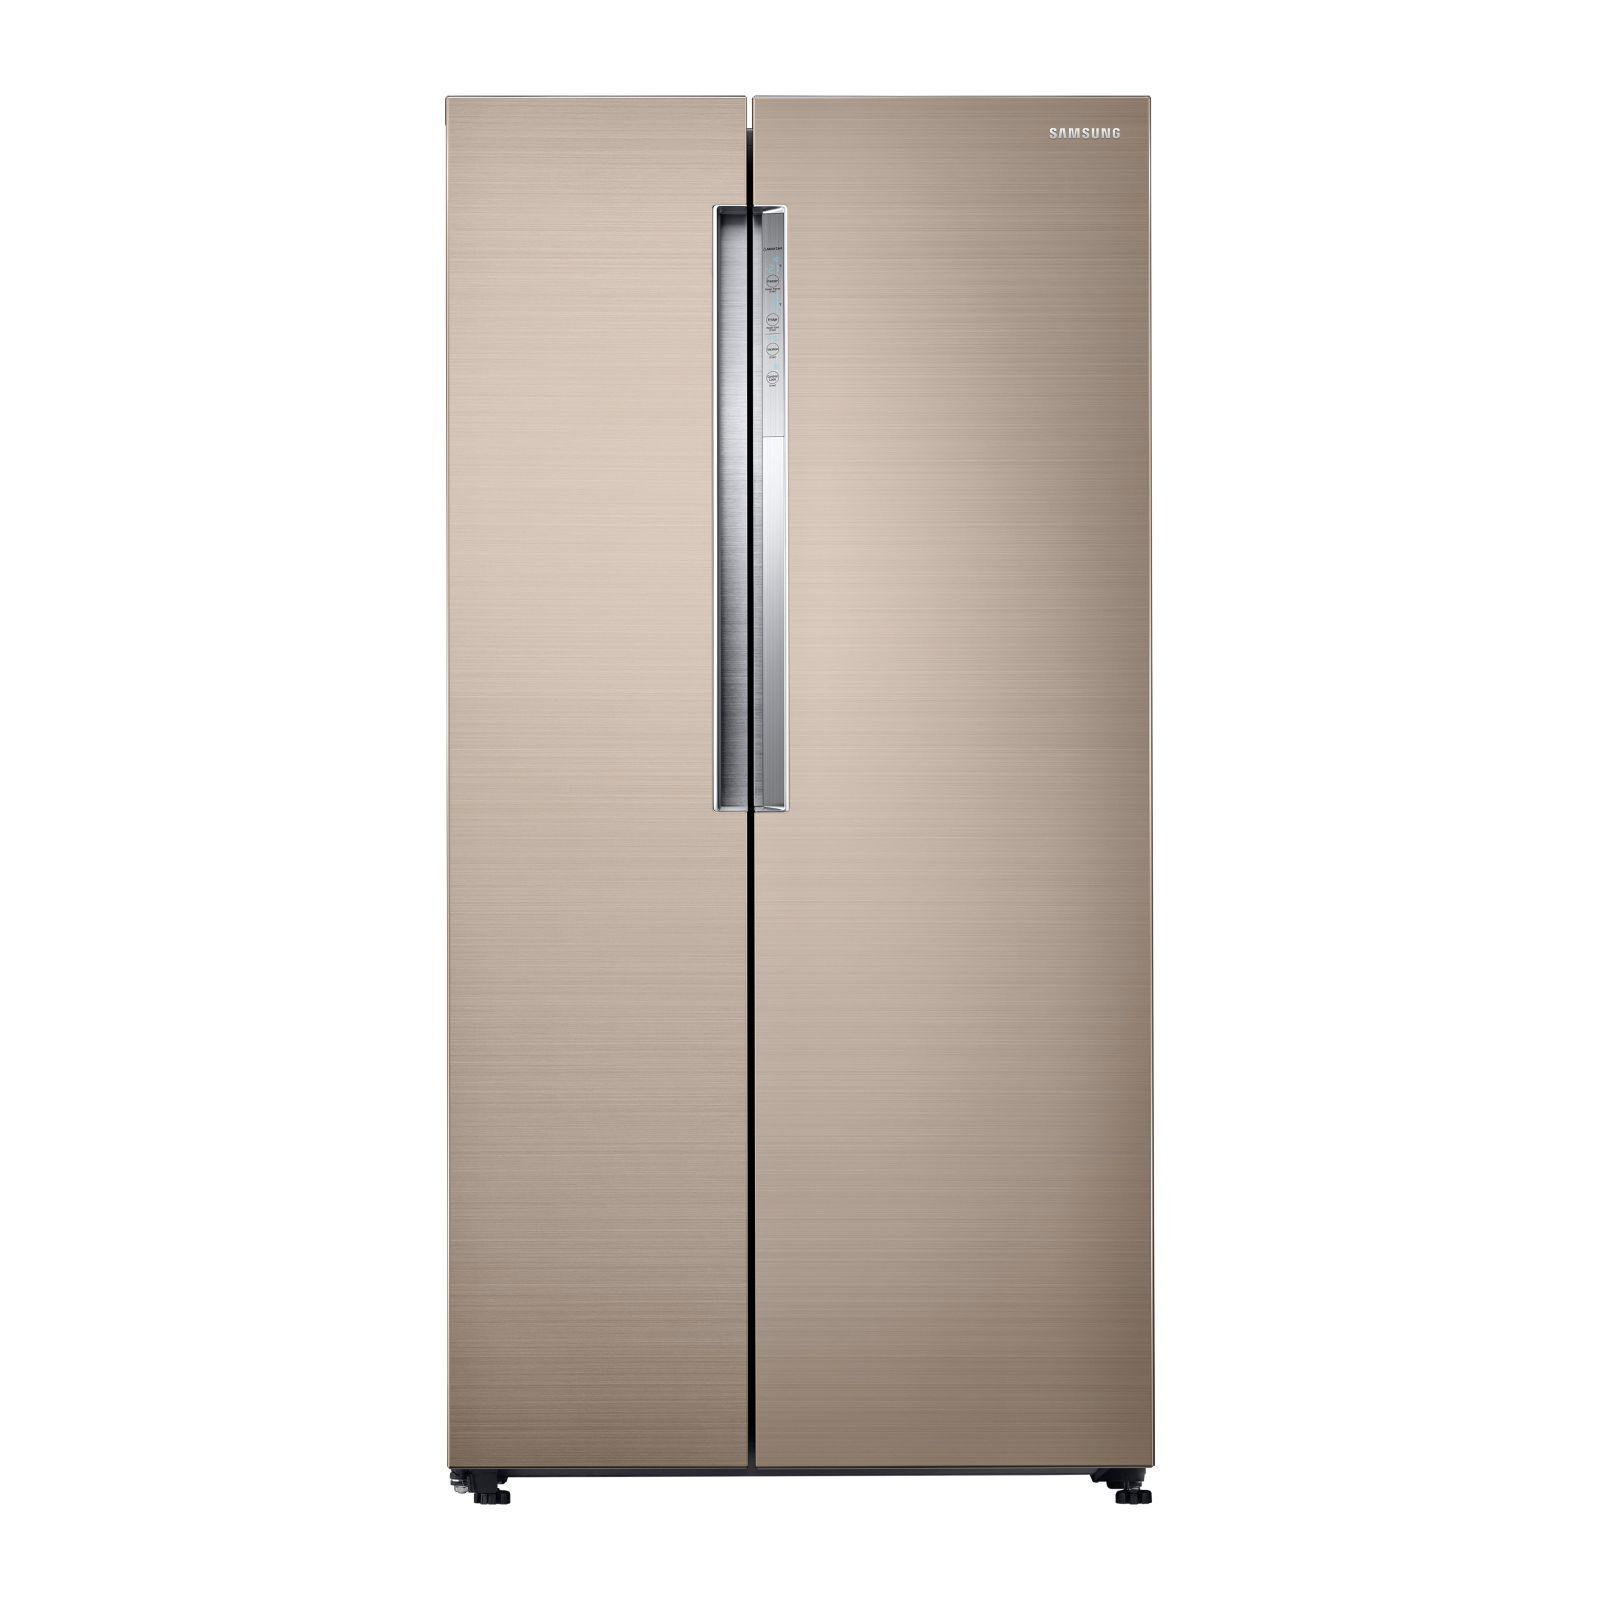 SAMSUNG RS62K61A77P/SS SIDE BY SIDE FRIDGE (GRS 656L)